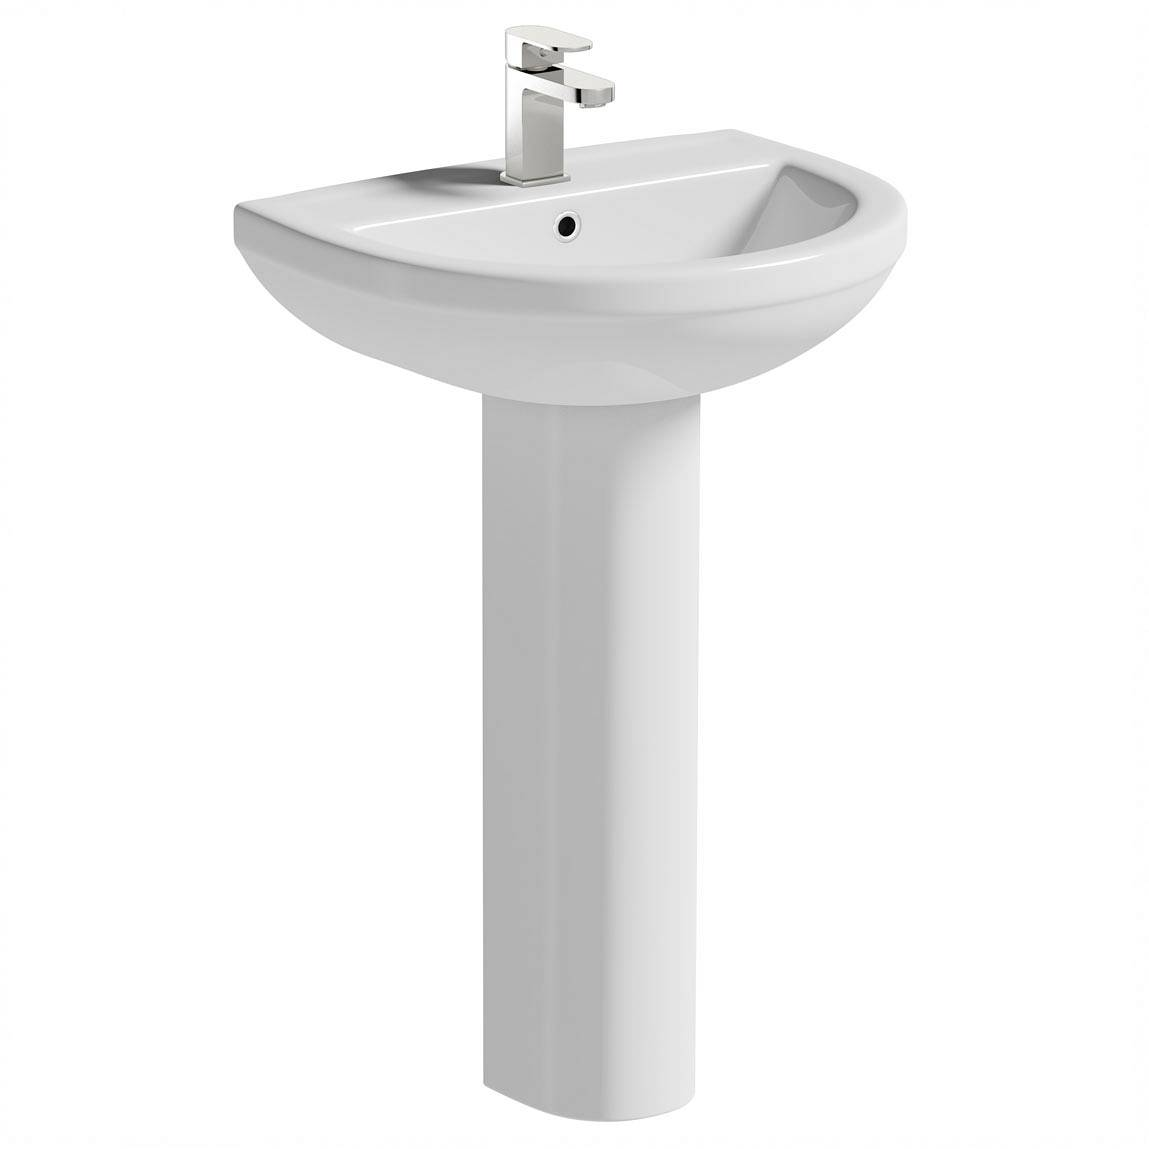 Image of Oakley 550mm 1TH Basin & Full Pedestal